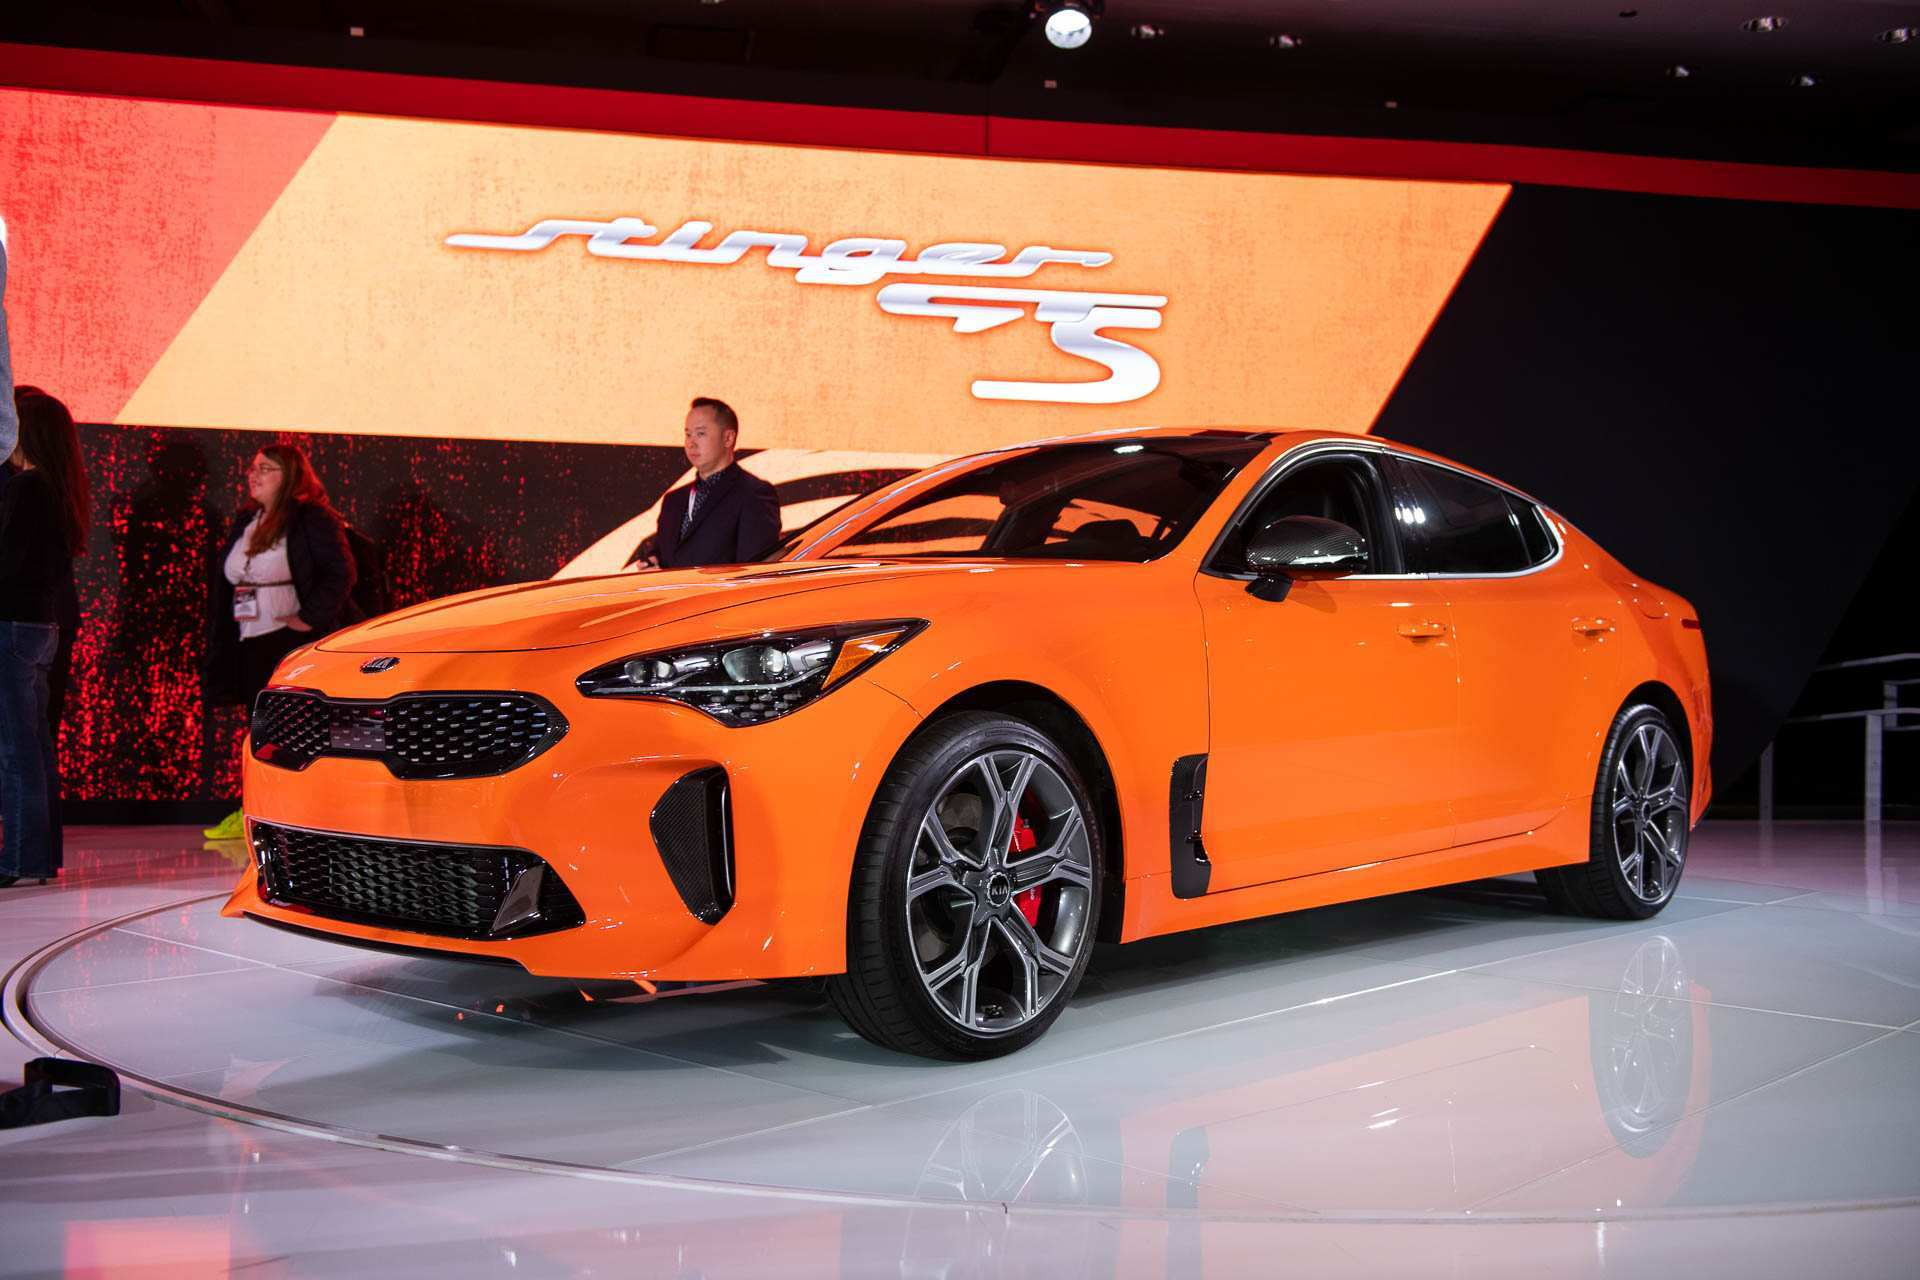 48 A 2020 Kia Stinger Gt Price And Release Date